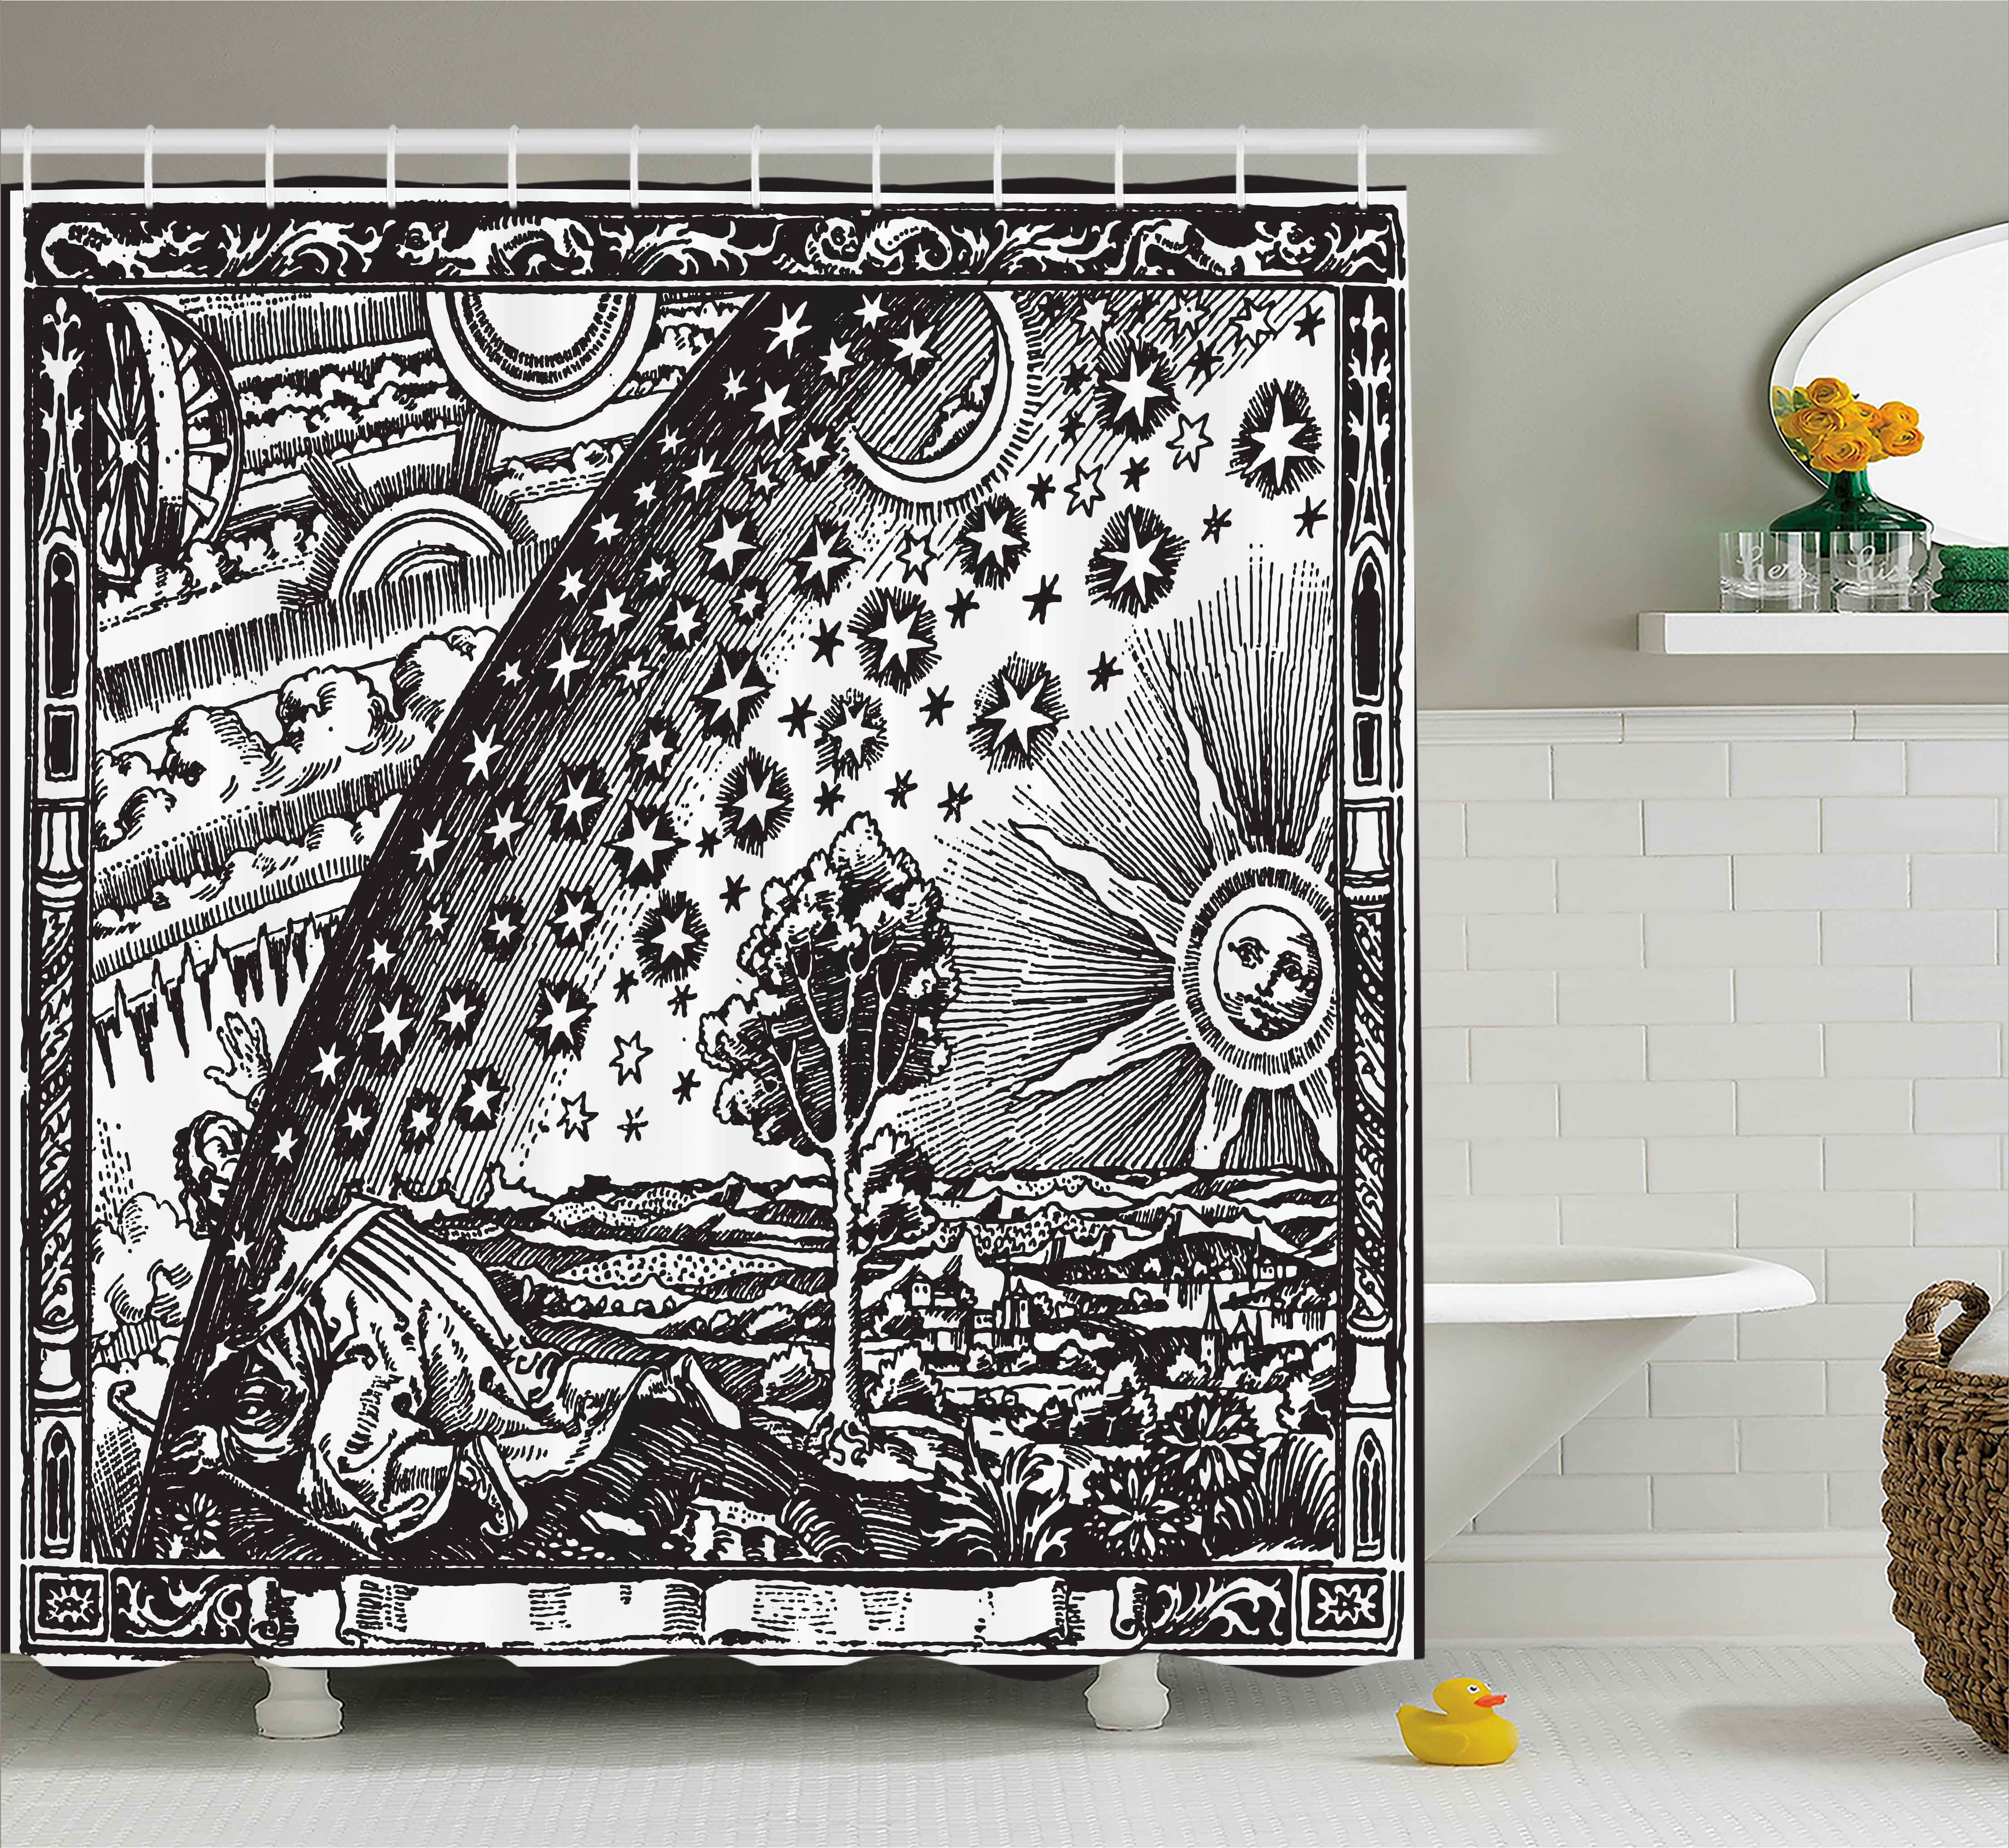 vintage shower curtain. Vintage Shower Curtain, Medieval Sacred Picture With Moon And Sun End Of The World Themed Curtain